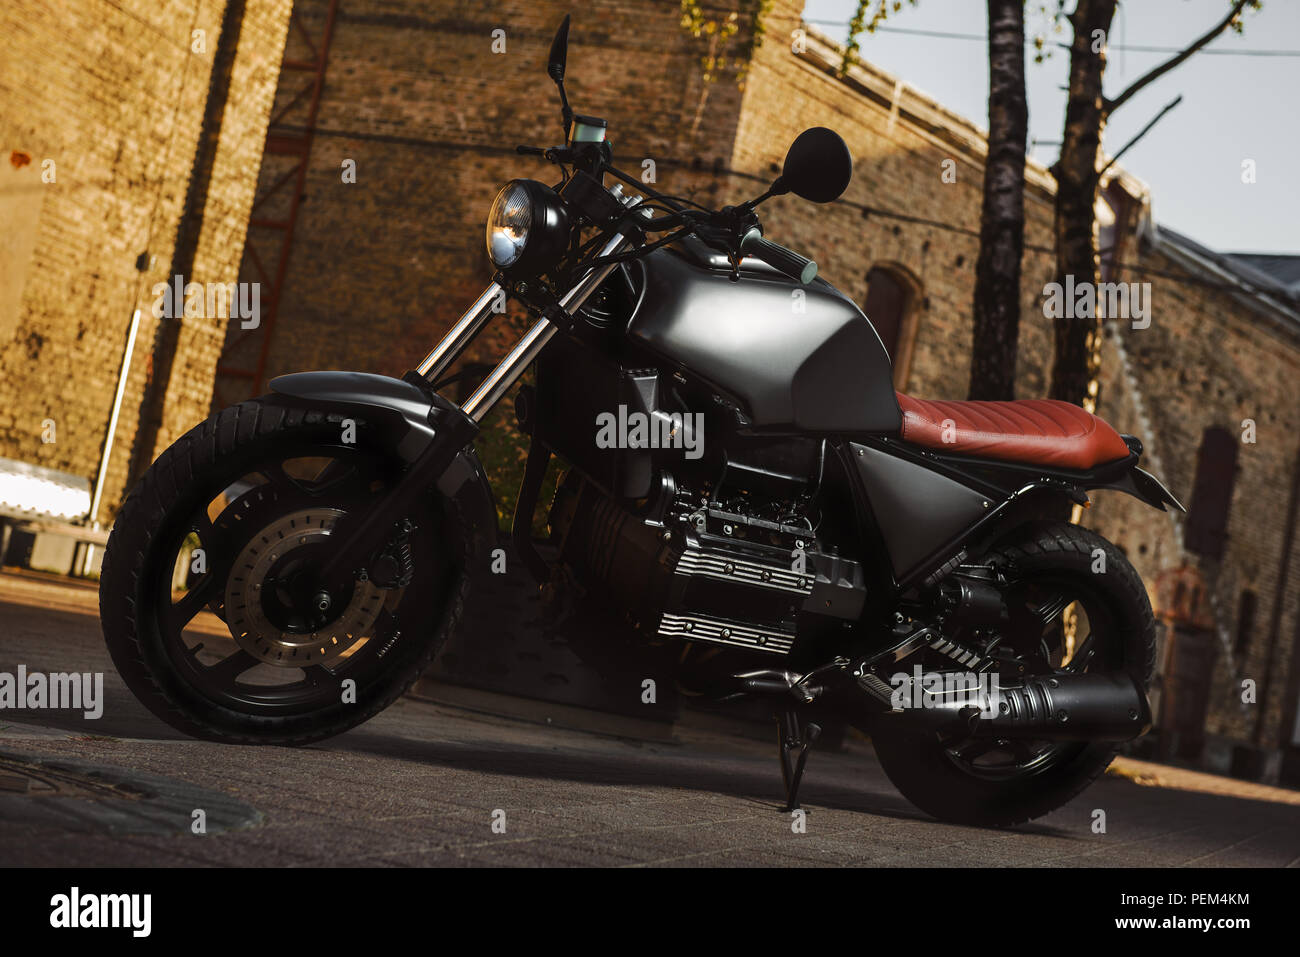 Cafe-racer motorcycle outdoor - Stock Image